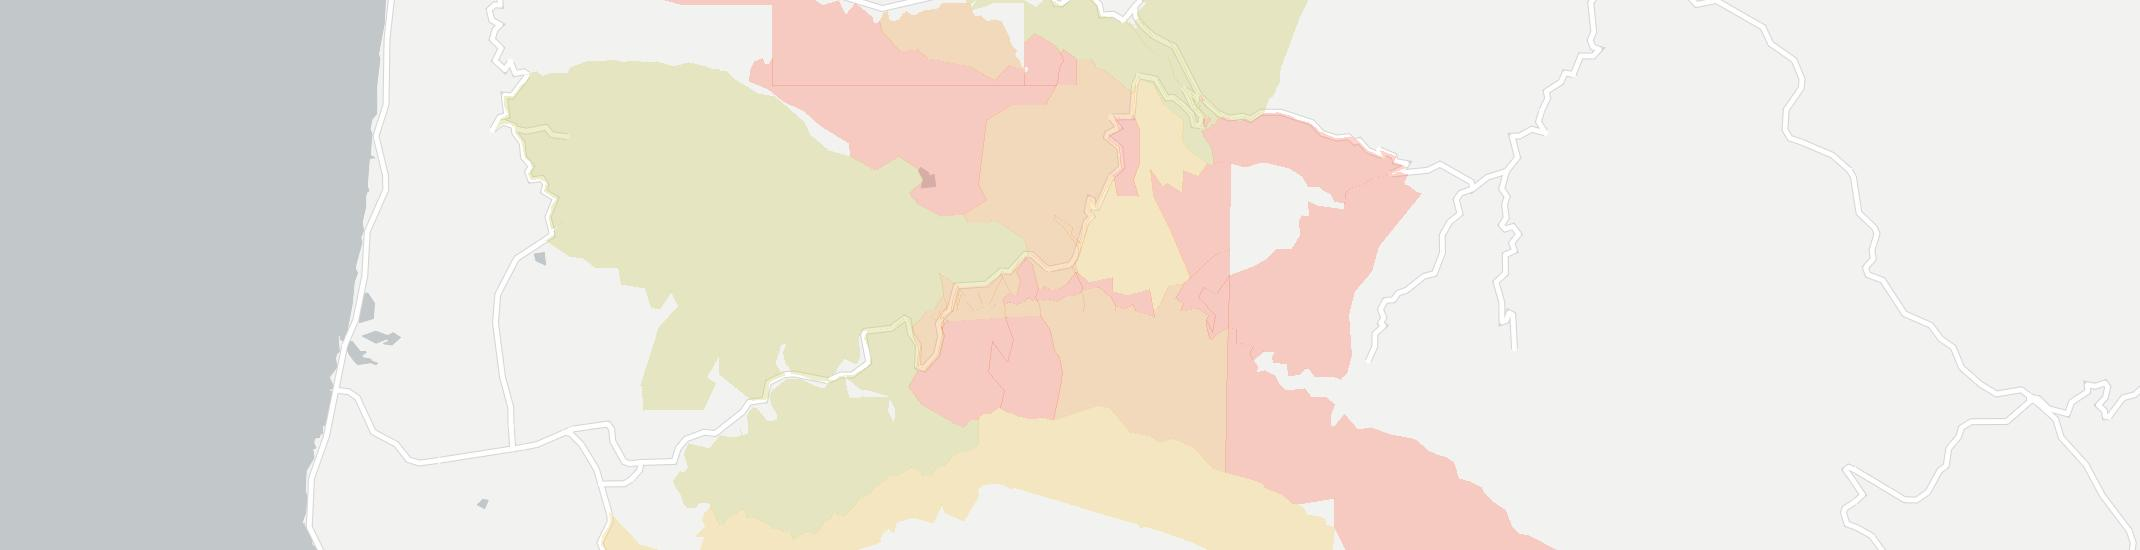 Loma Mar Internet Competition Map. Click for interactive map.